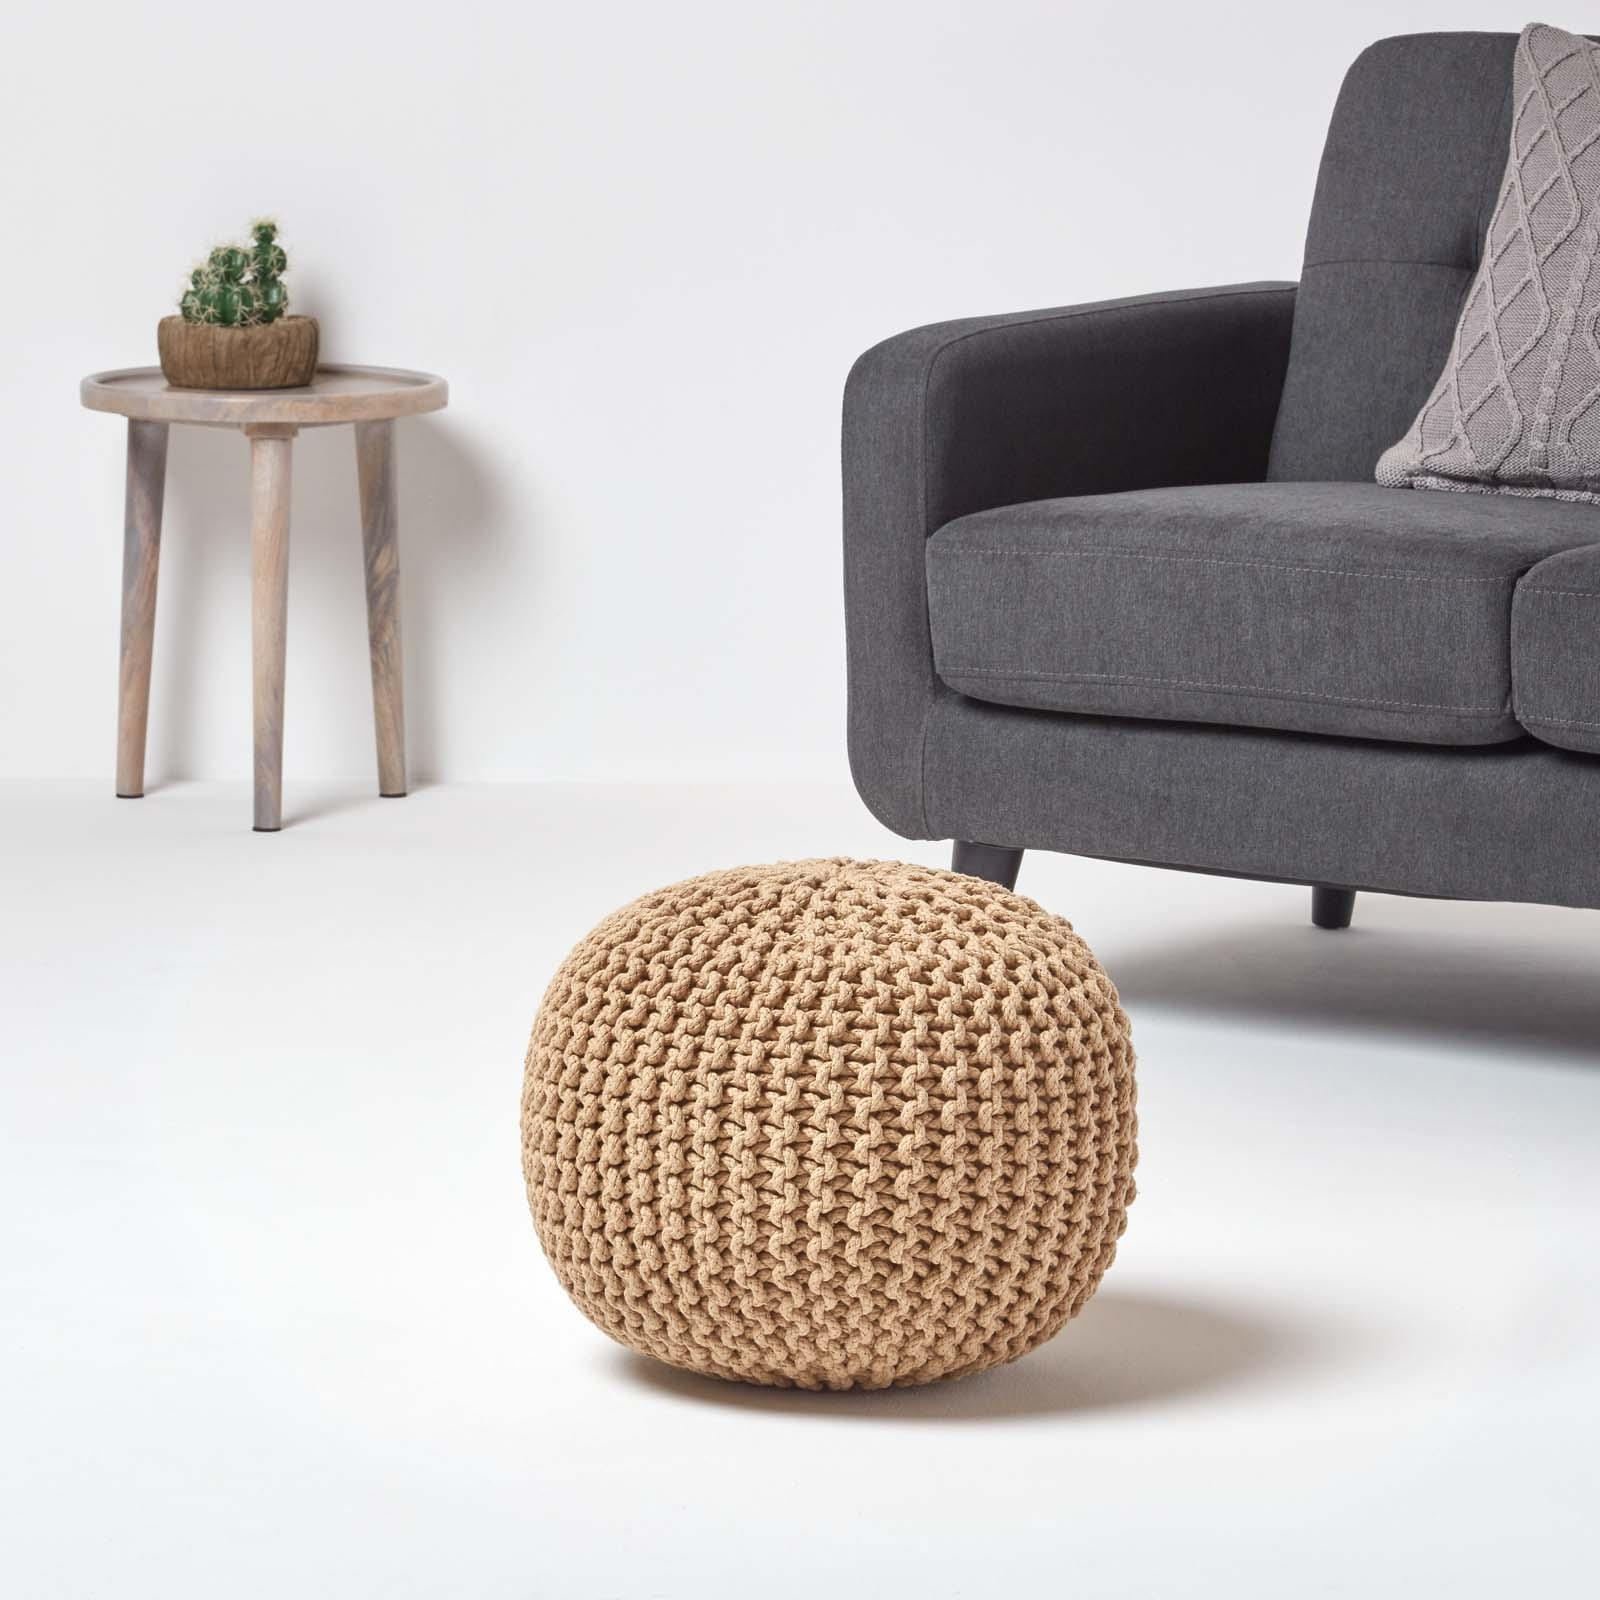 Hand-Knitted-100-Cotton-Pouffes-Round-Sphere-Or-Cube-Square-Chunky-Footstools thumbnail 80